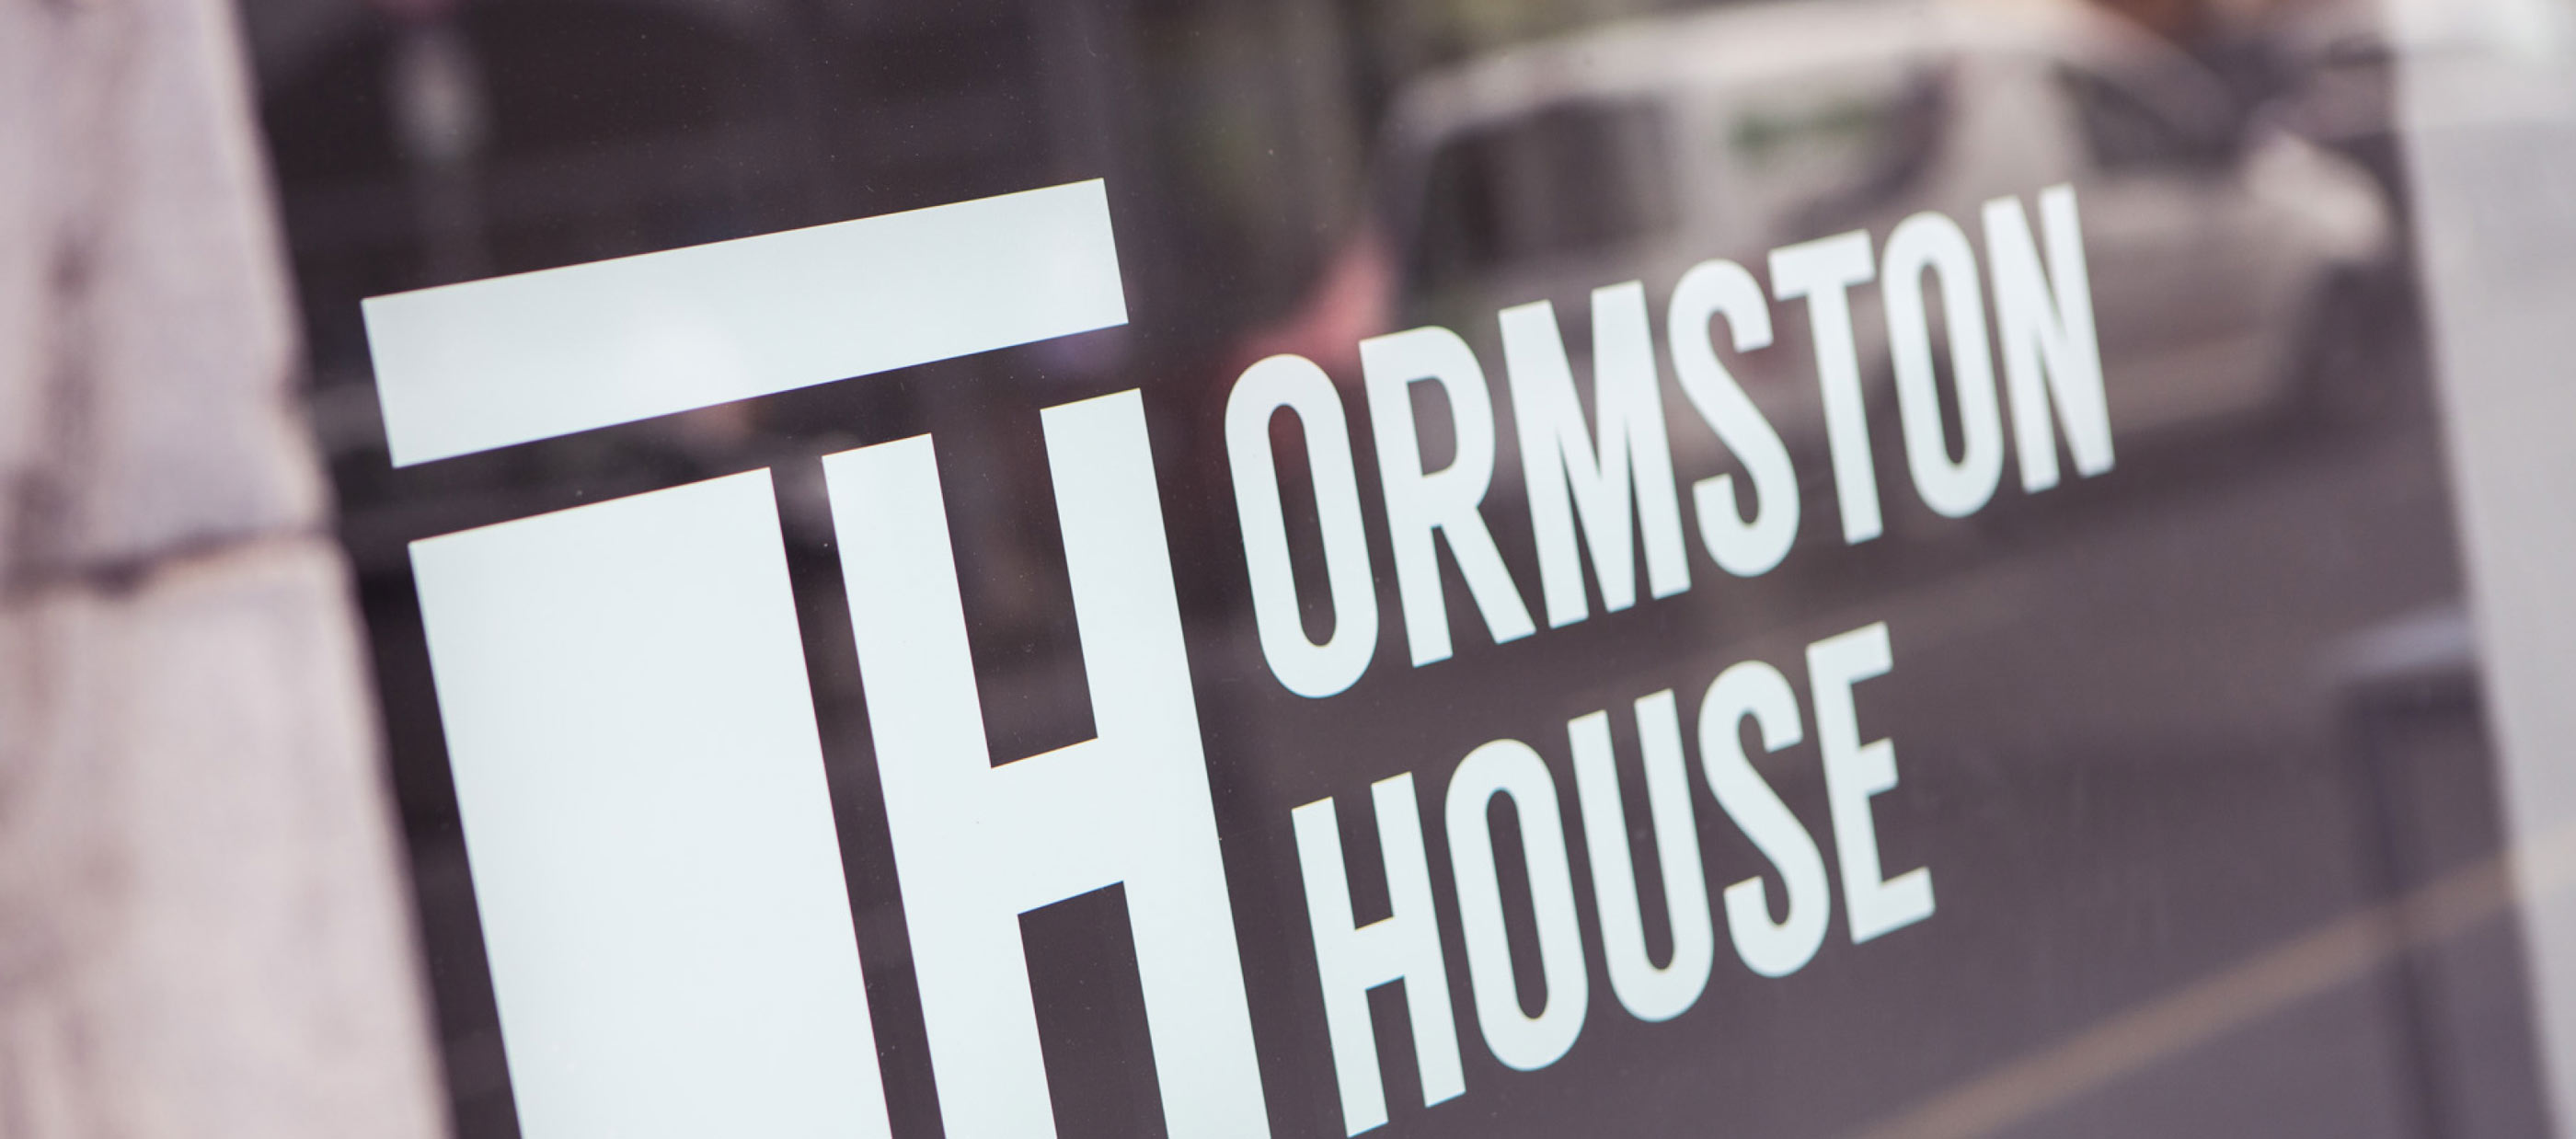 Ormston House Limerick brand development and logo design image of window